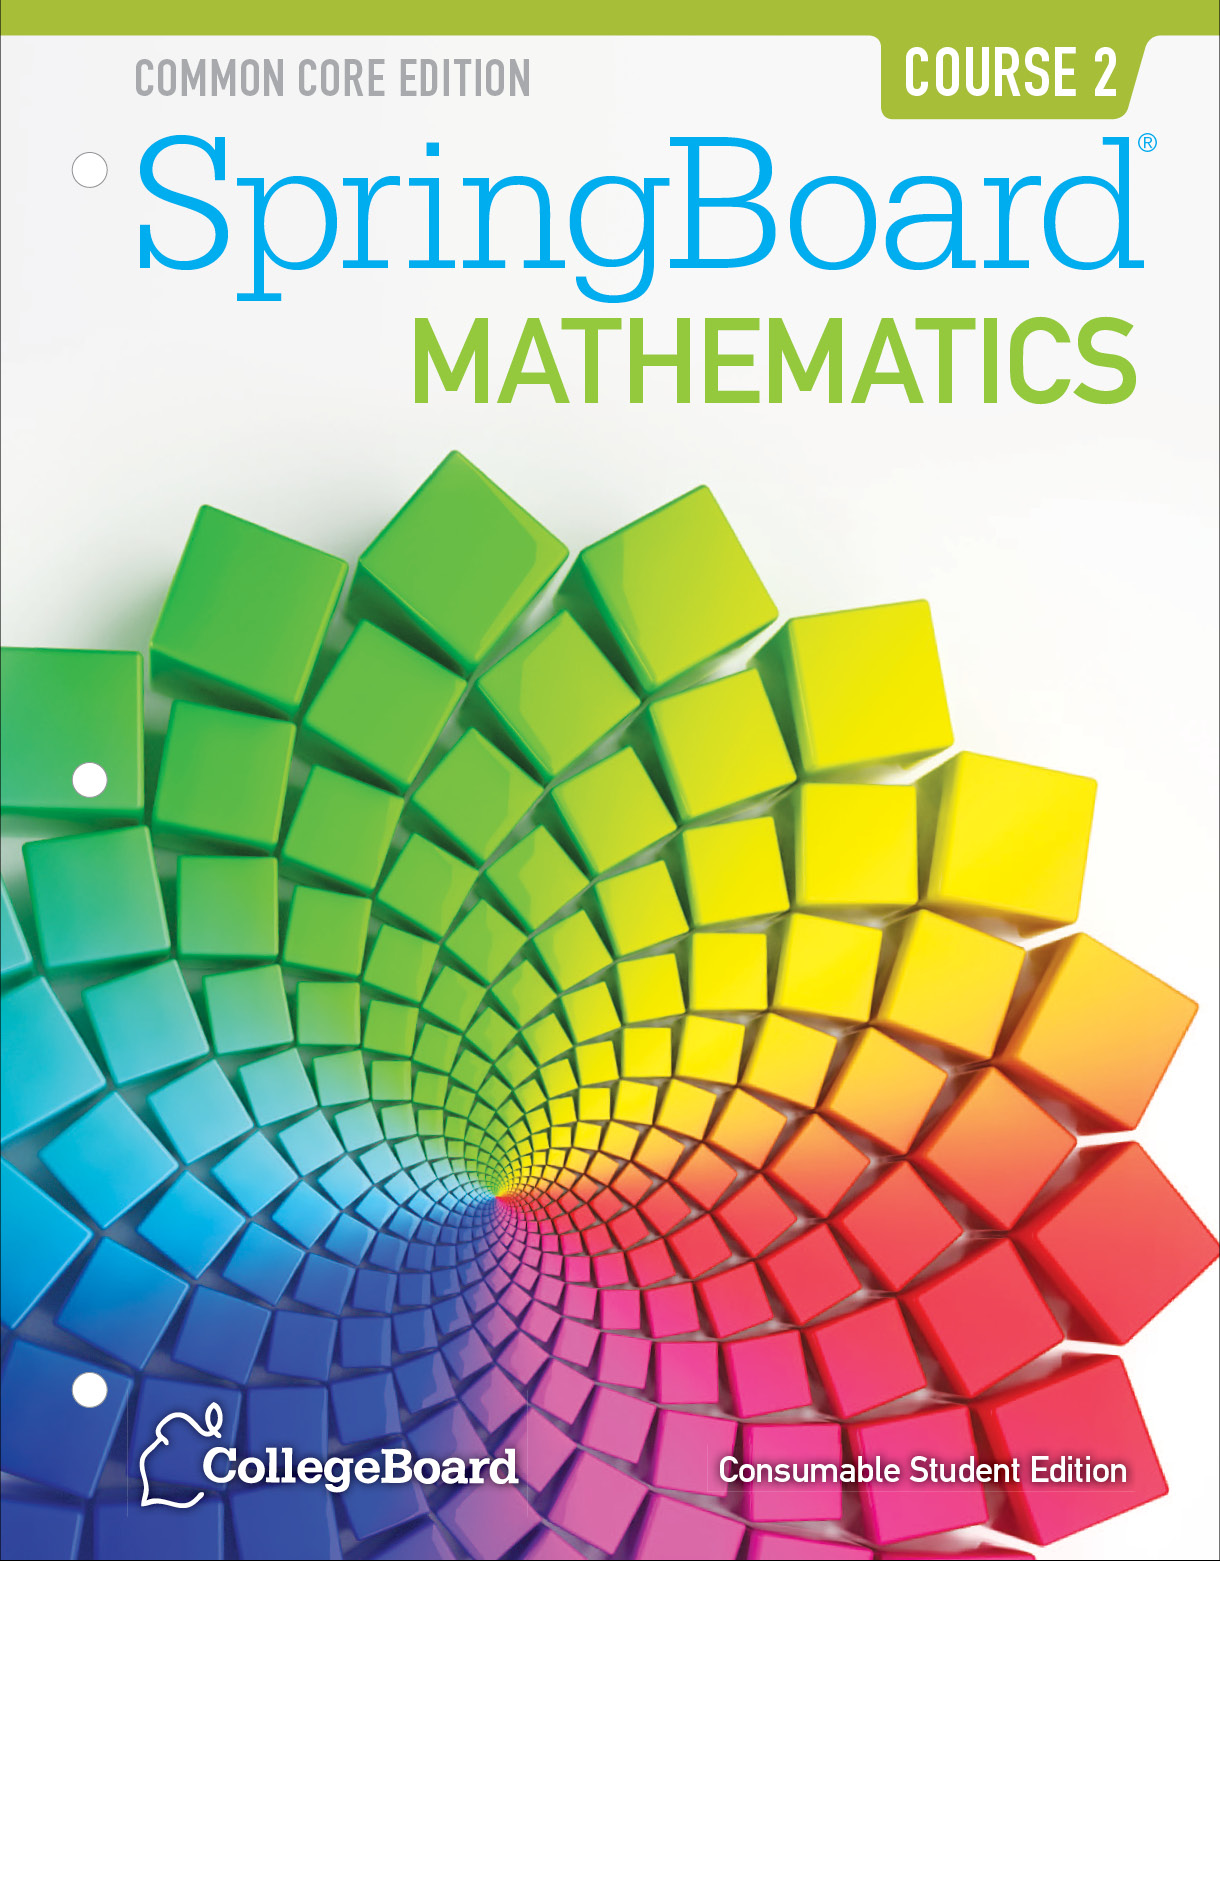 Book cover of the Common Core Edition of SpringBoard Mathematics Course two from CollegeBoard. It has colorful blocks forming a star.